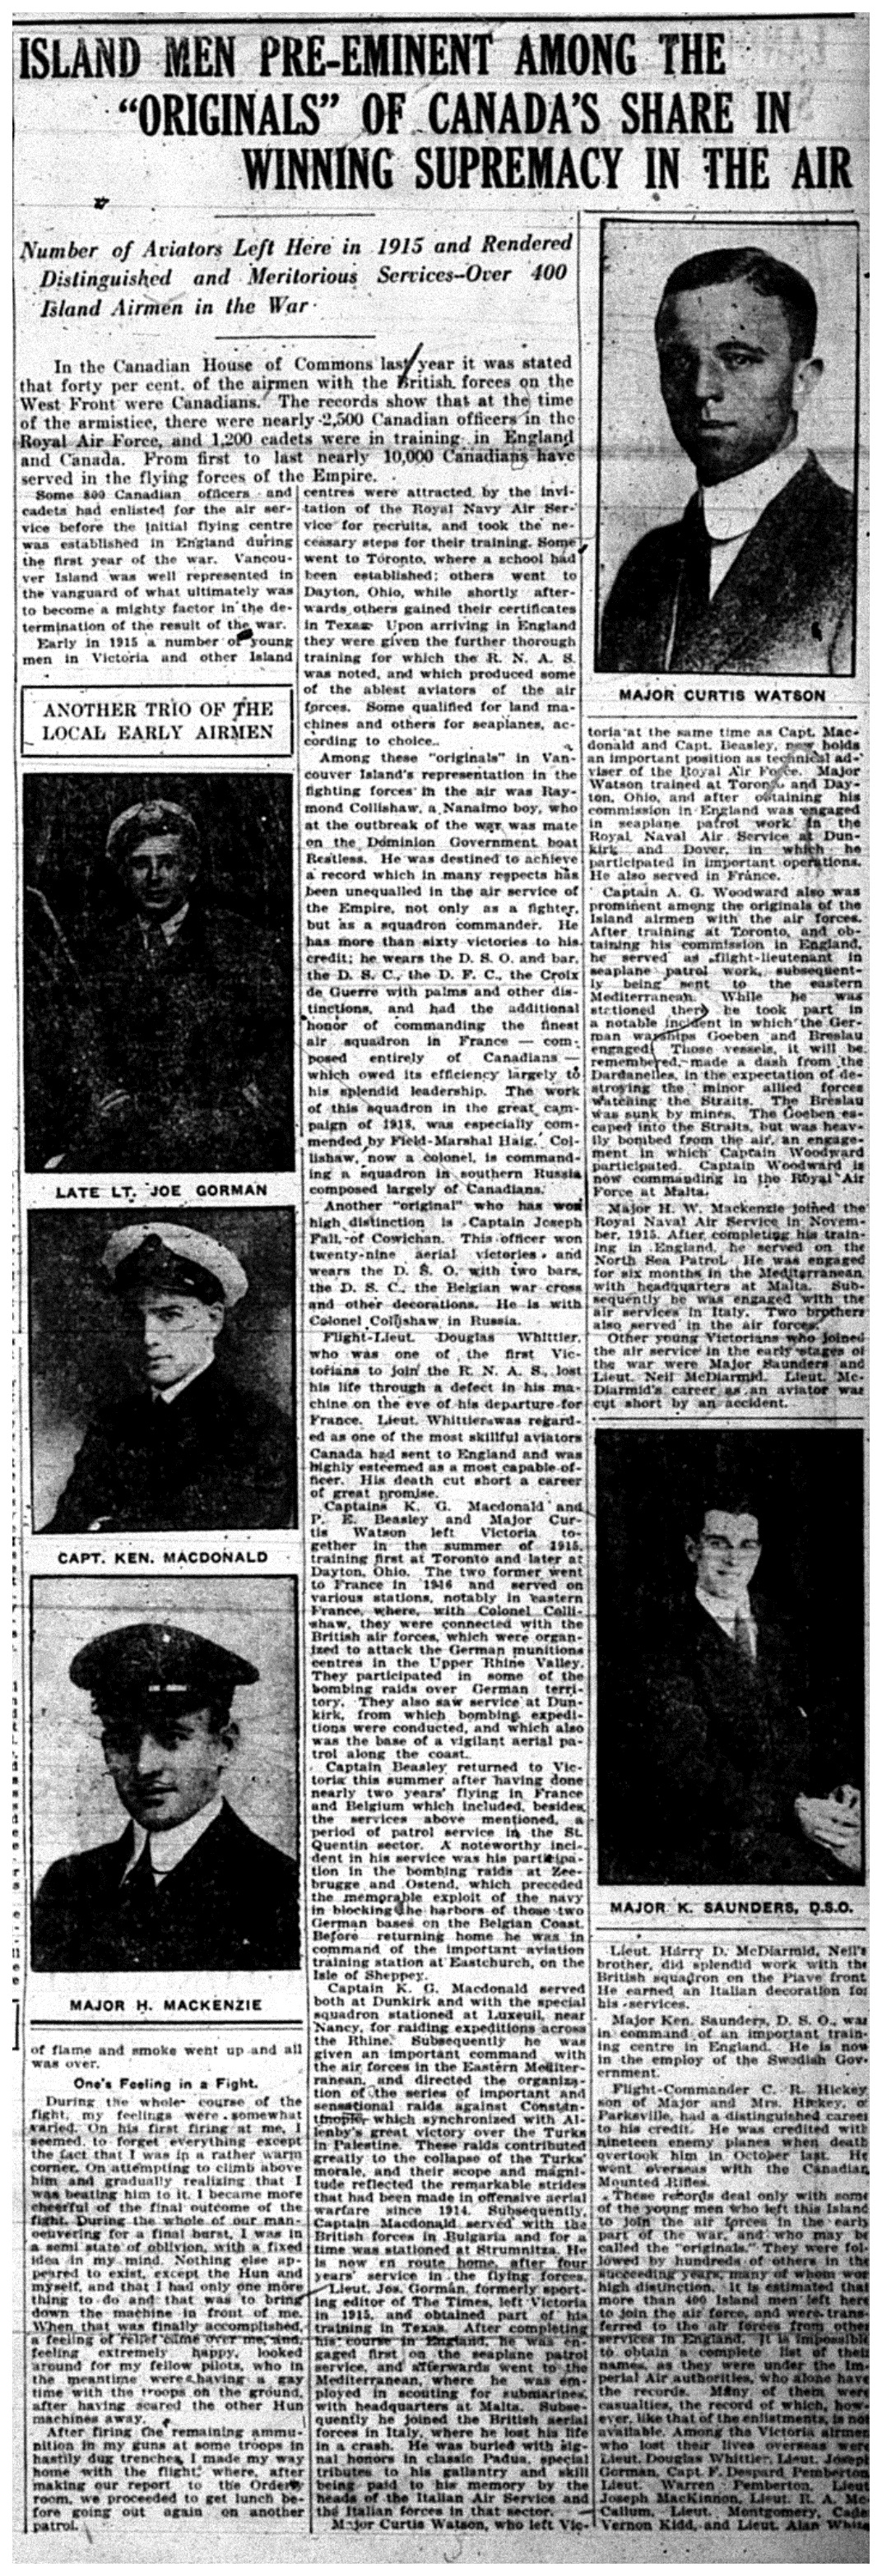 """""""Island Men Pre-Eminent Among The """"Originals"""" Of Canada's Share In Winning Supremacy In The Air"""""""